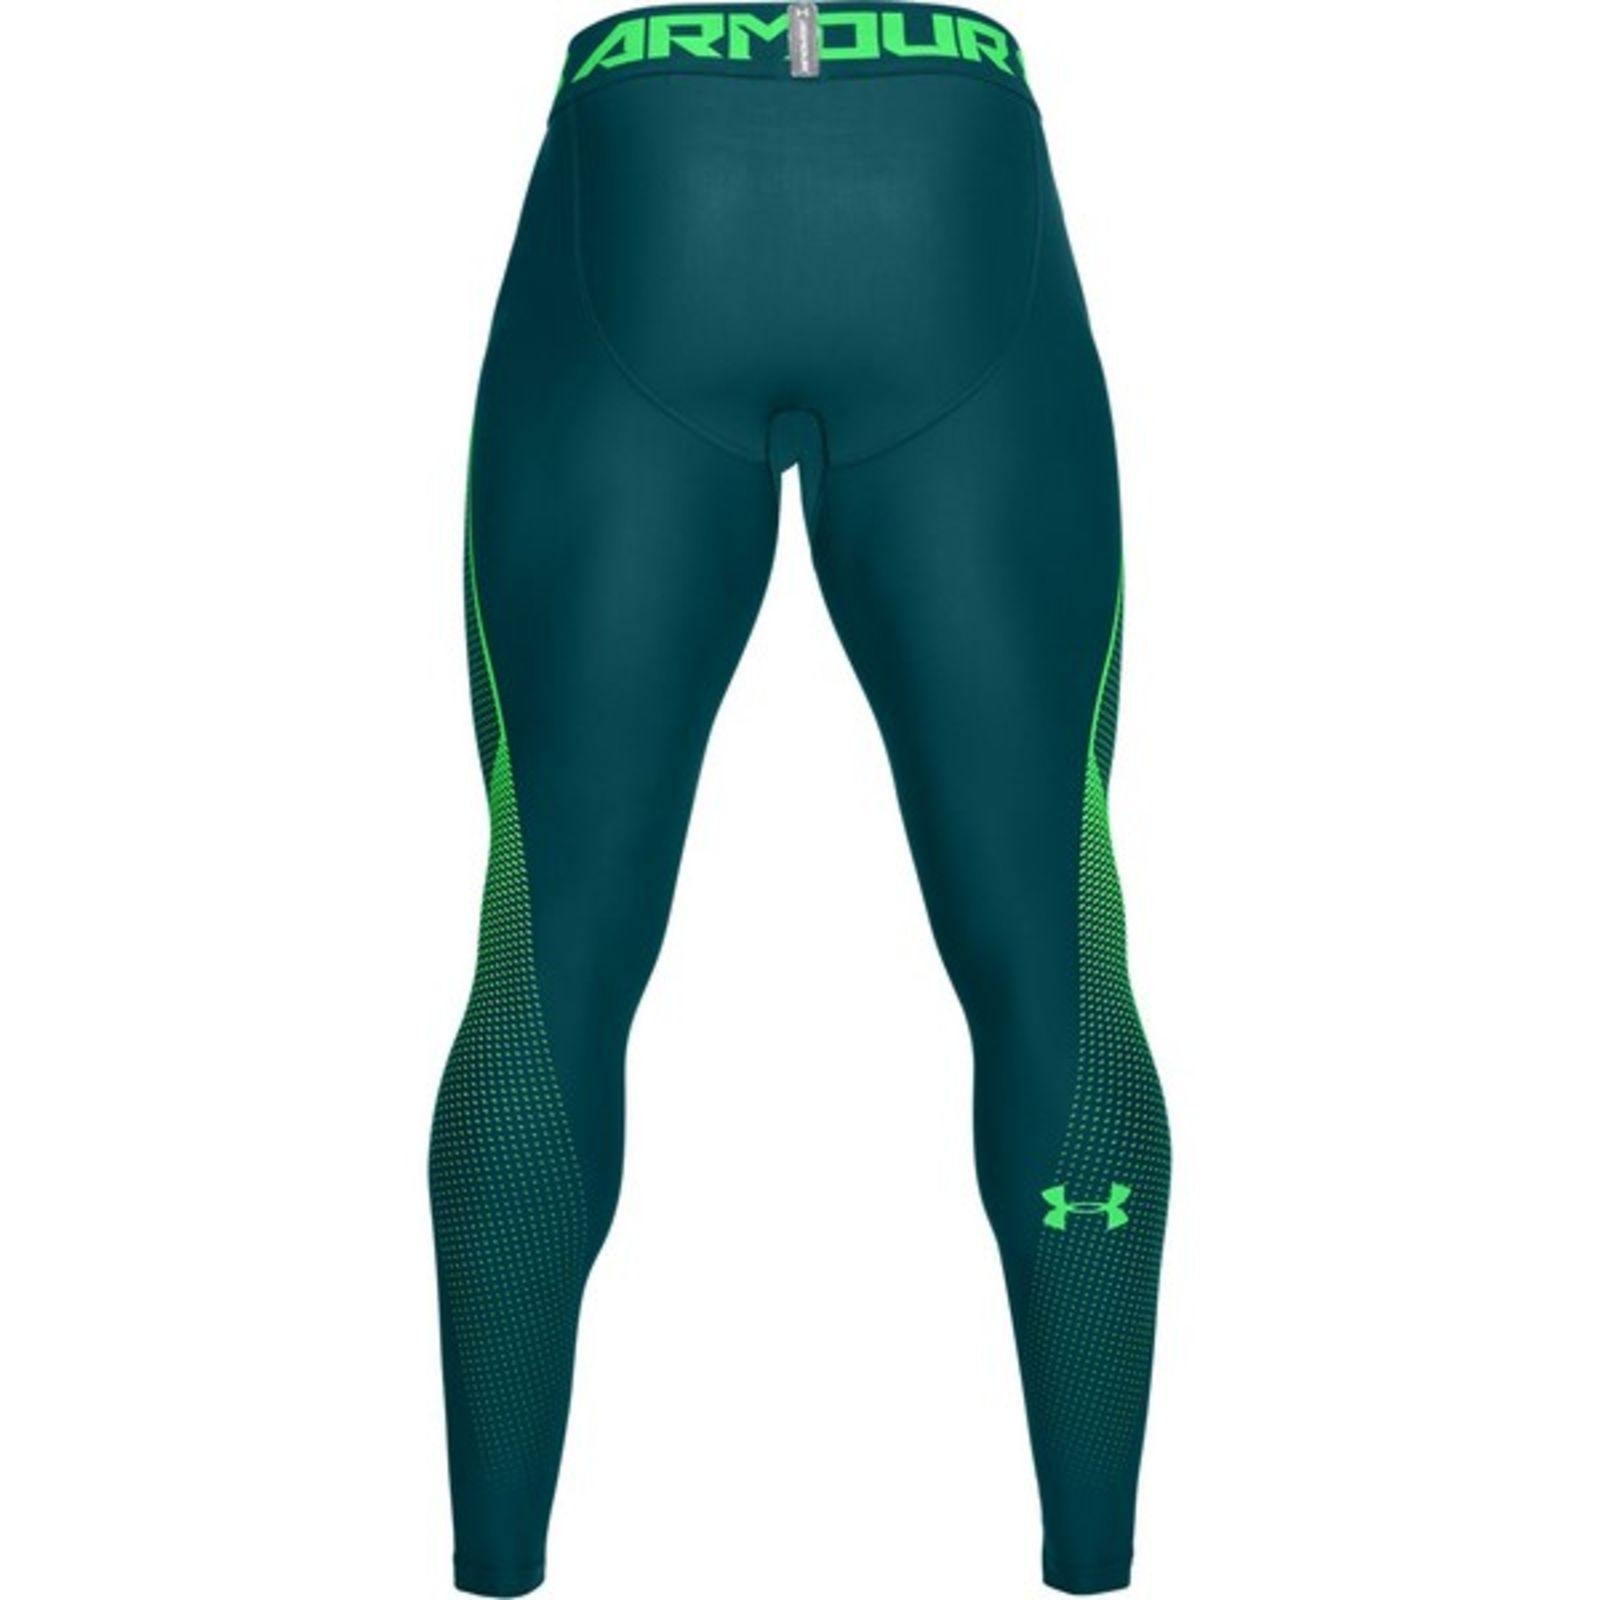 Under Armour Graphic Legging (aláöltözet)